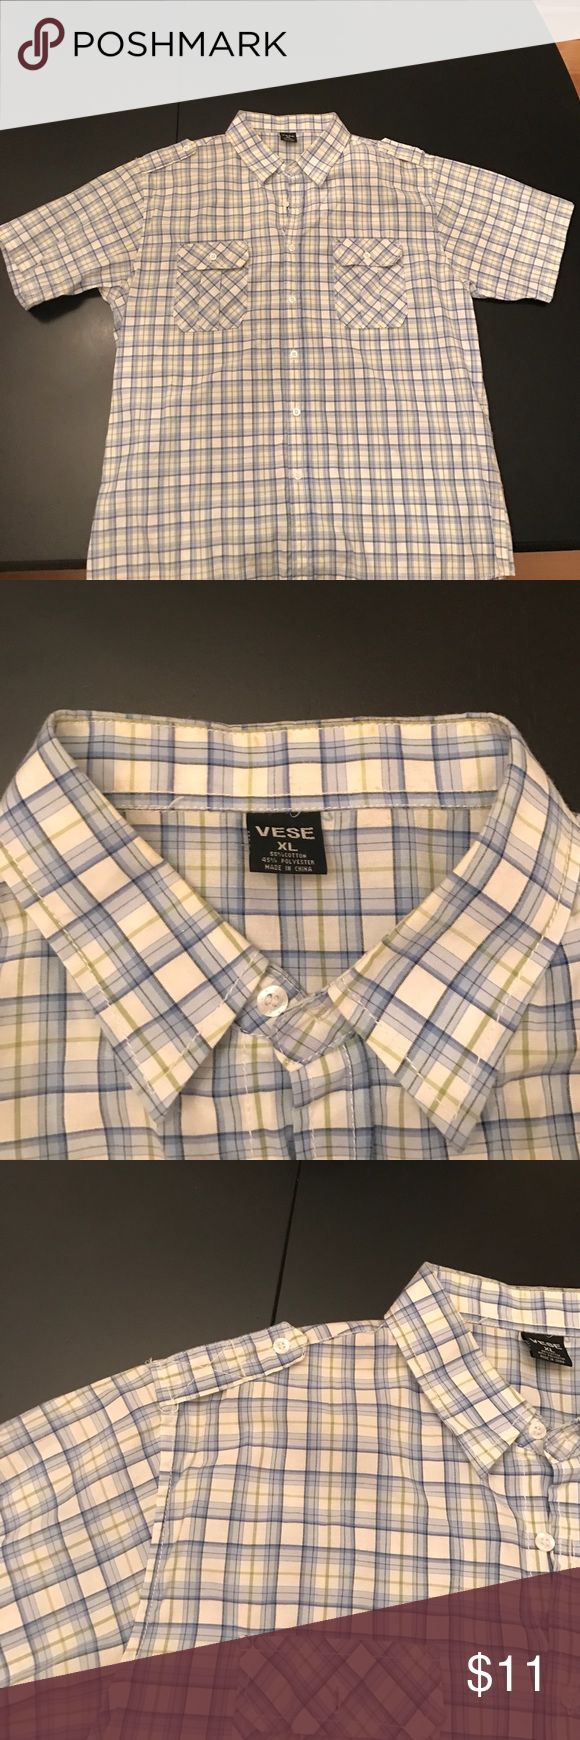 👔Men's short sleeve button down shirt 👔 Gently used. Perfect for the summer ☀️👌🏻 Vese Shirts Casual Button Down Shirts